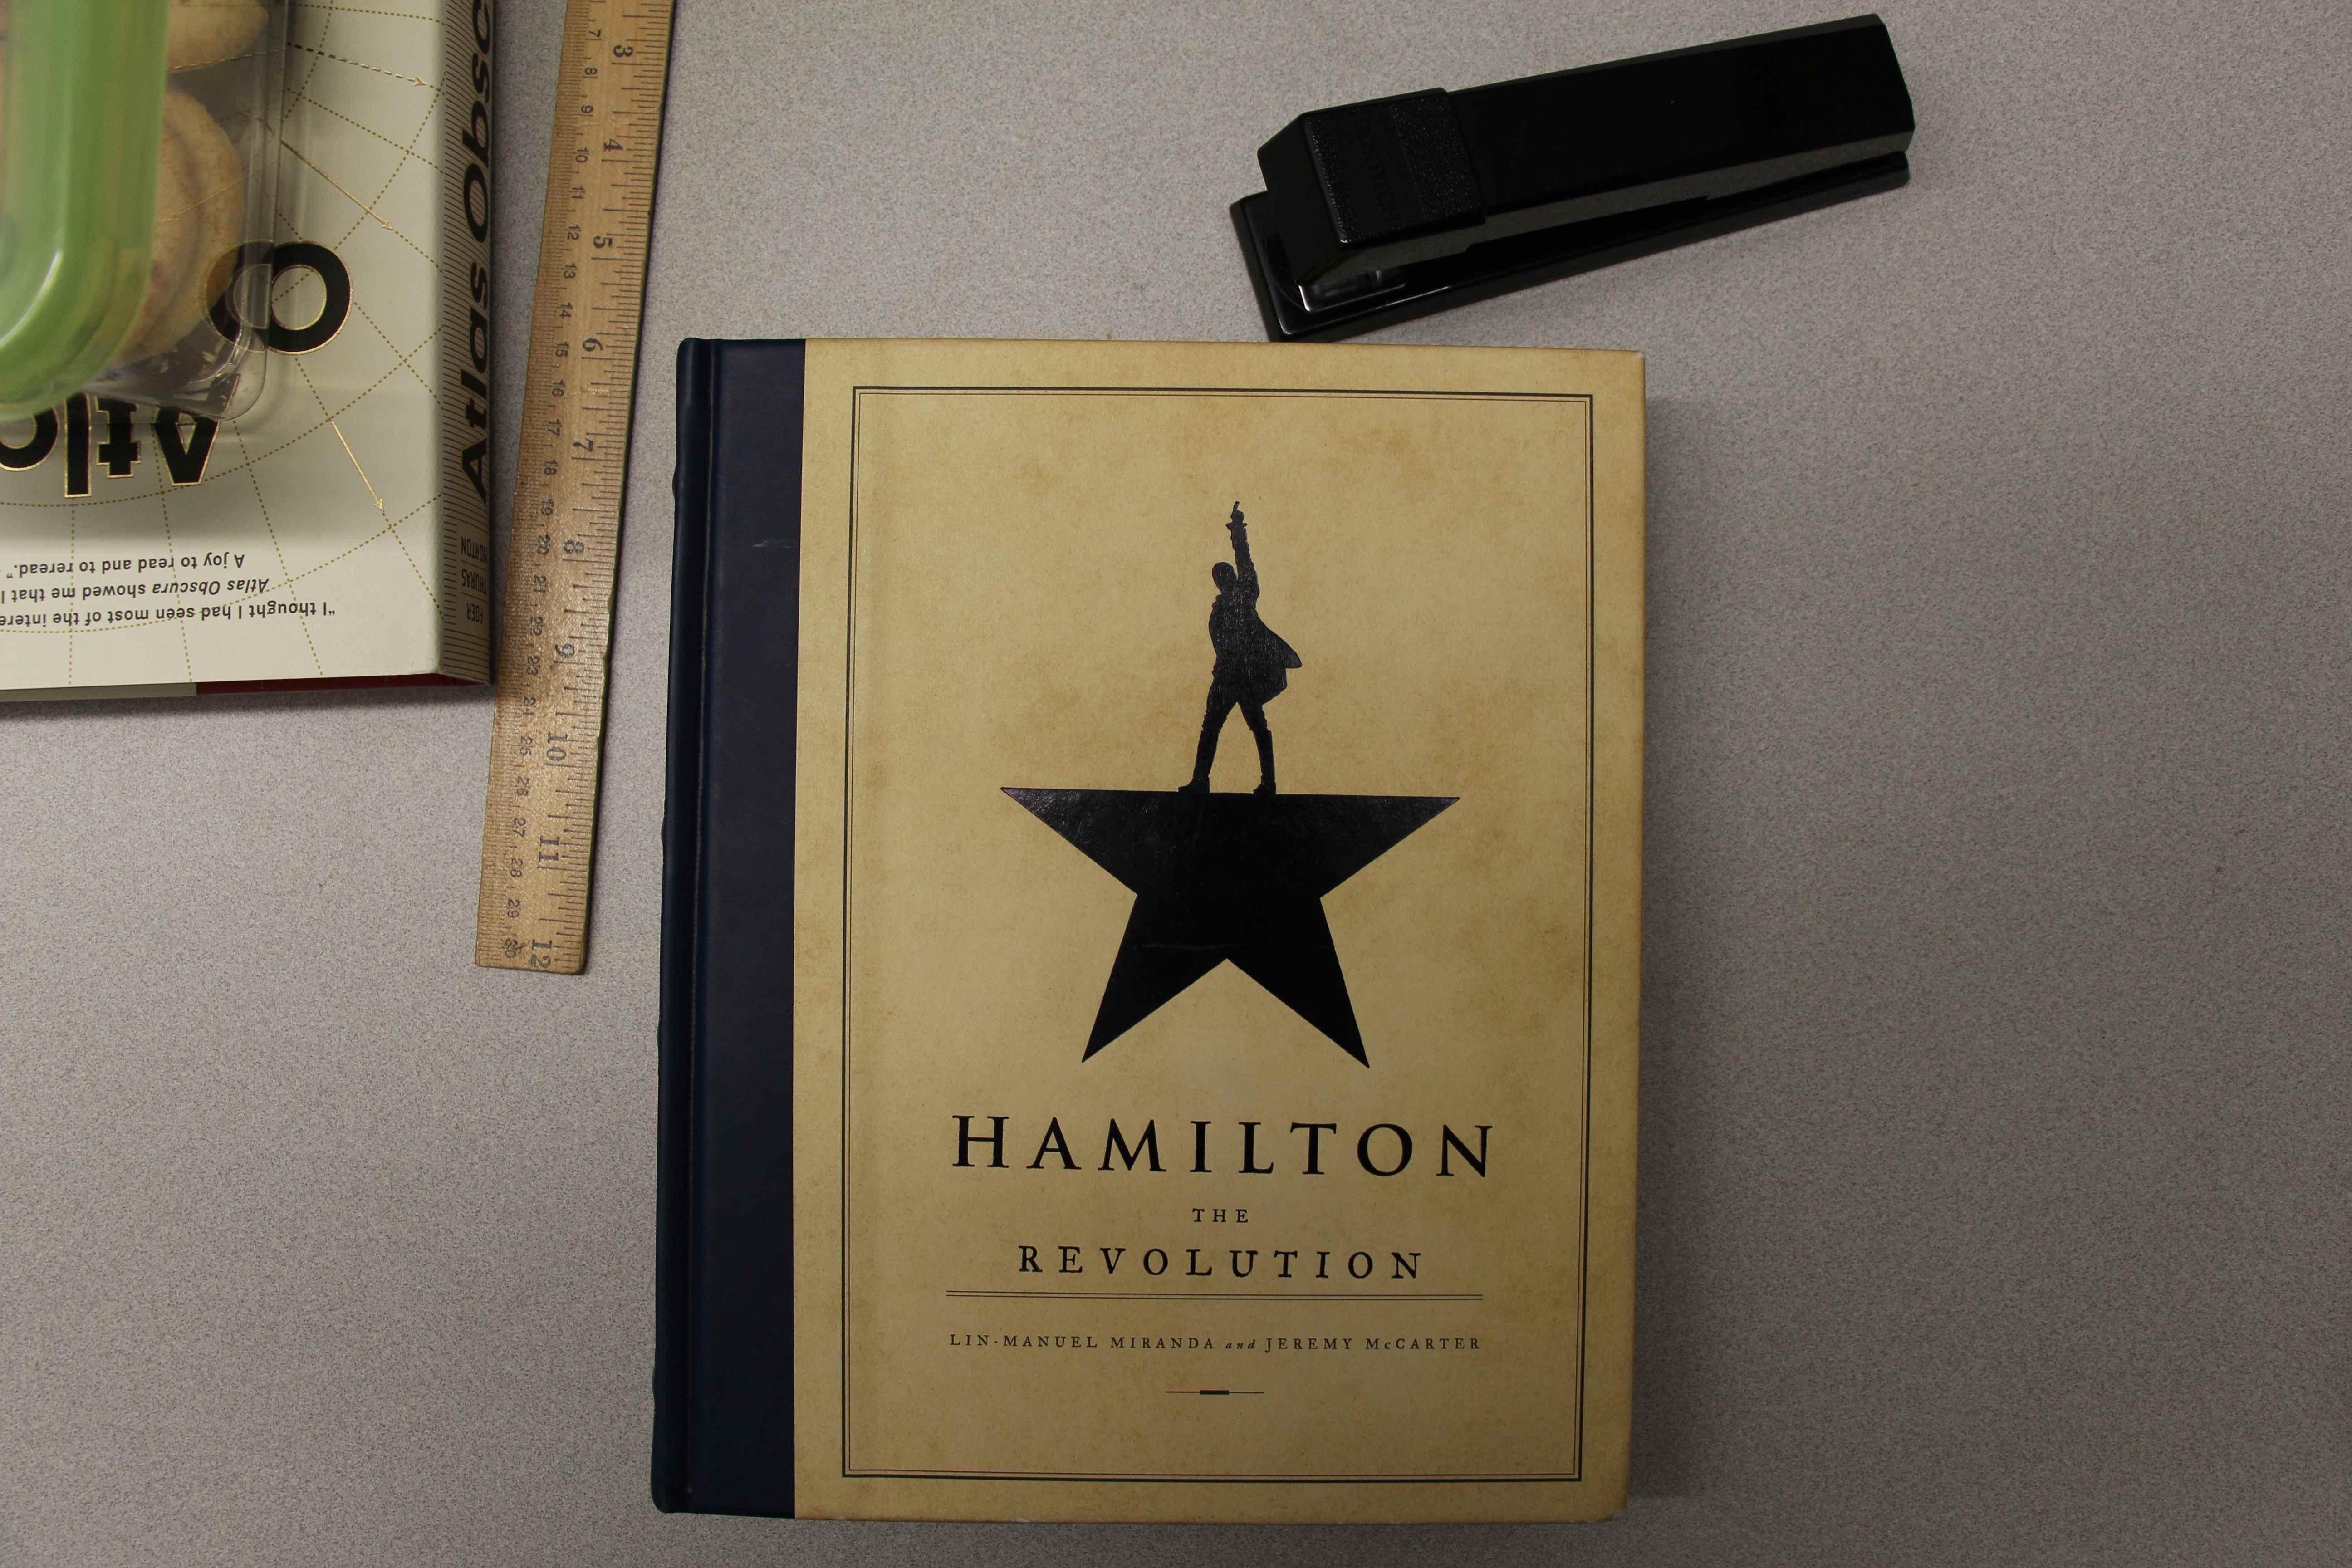 The popularity of the musical Hamilton can be attributed to its modern take on an exciting historical time period and the fact that it features appealing music, according to sophomore Zuzzie Savitz. Maya Morris / Sagamore Staff